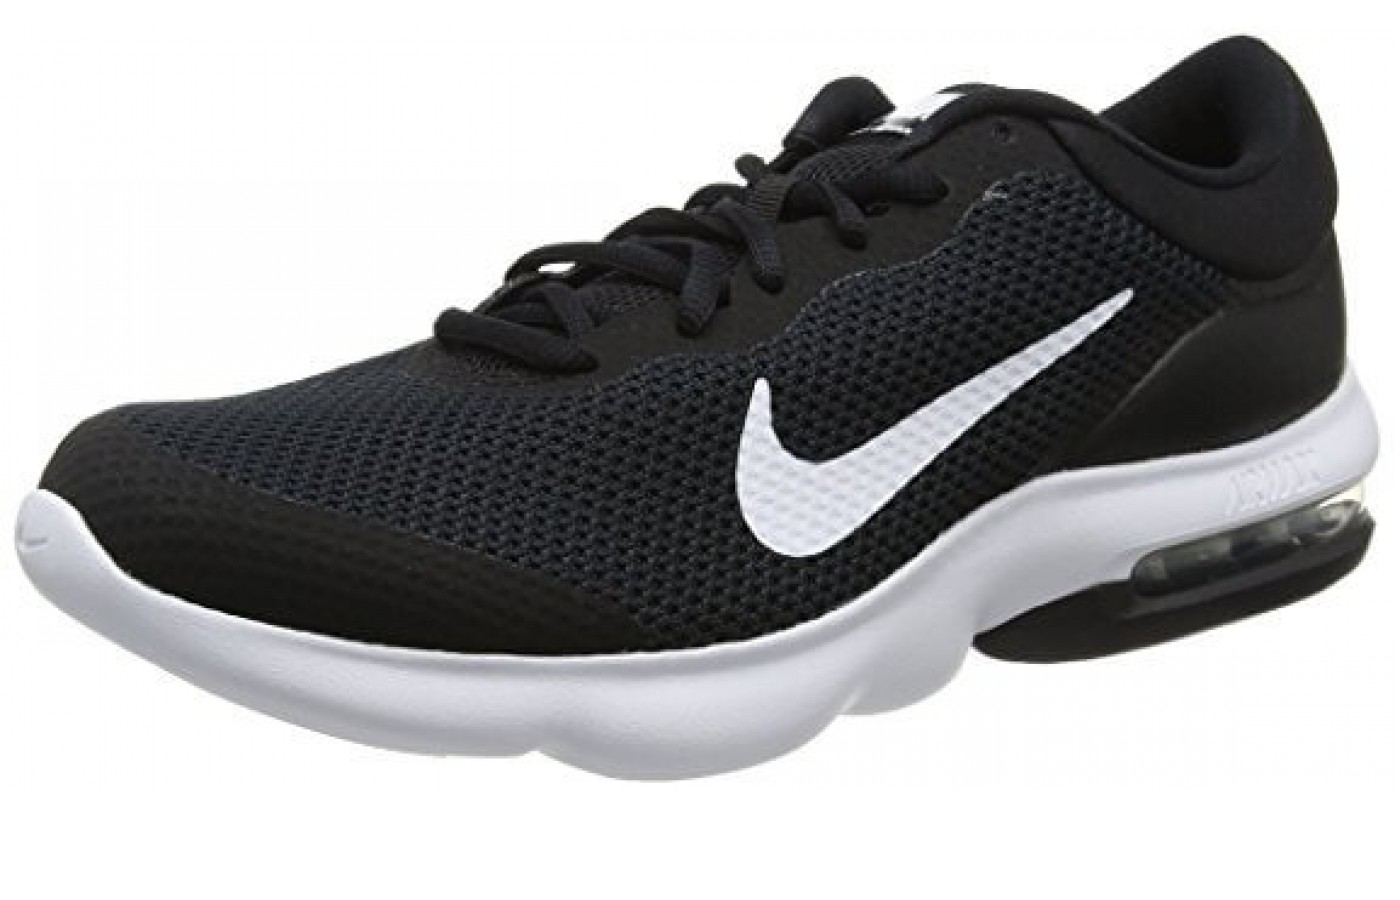 new product 0a114 b8630 Nike Air Max Advantage